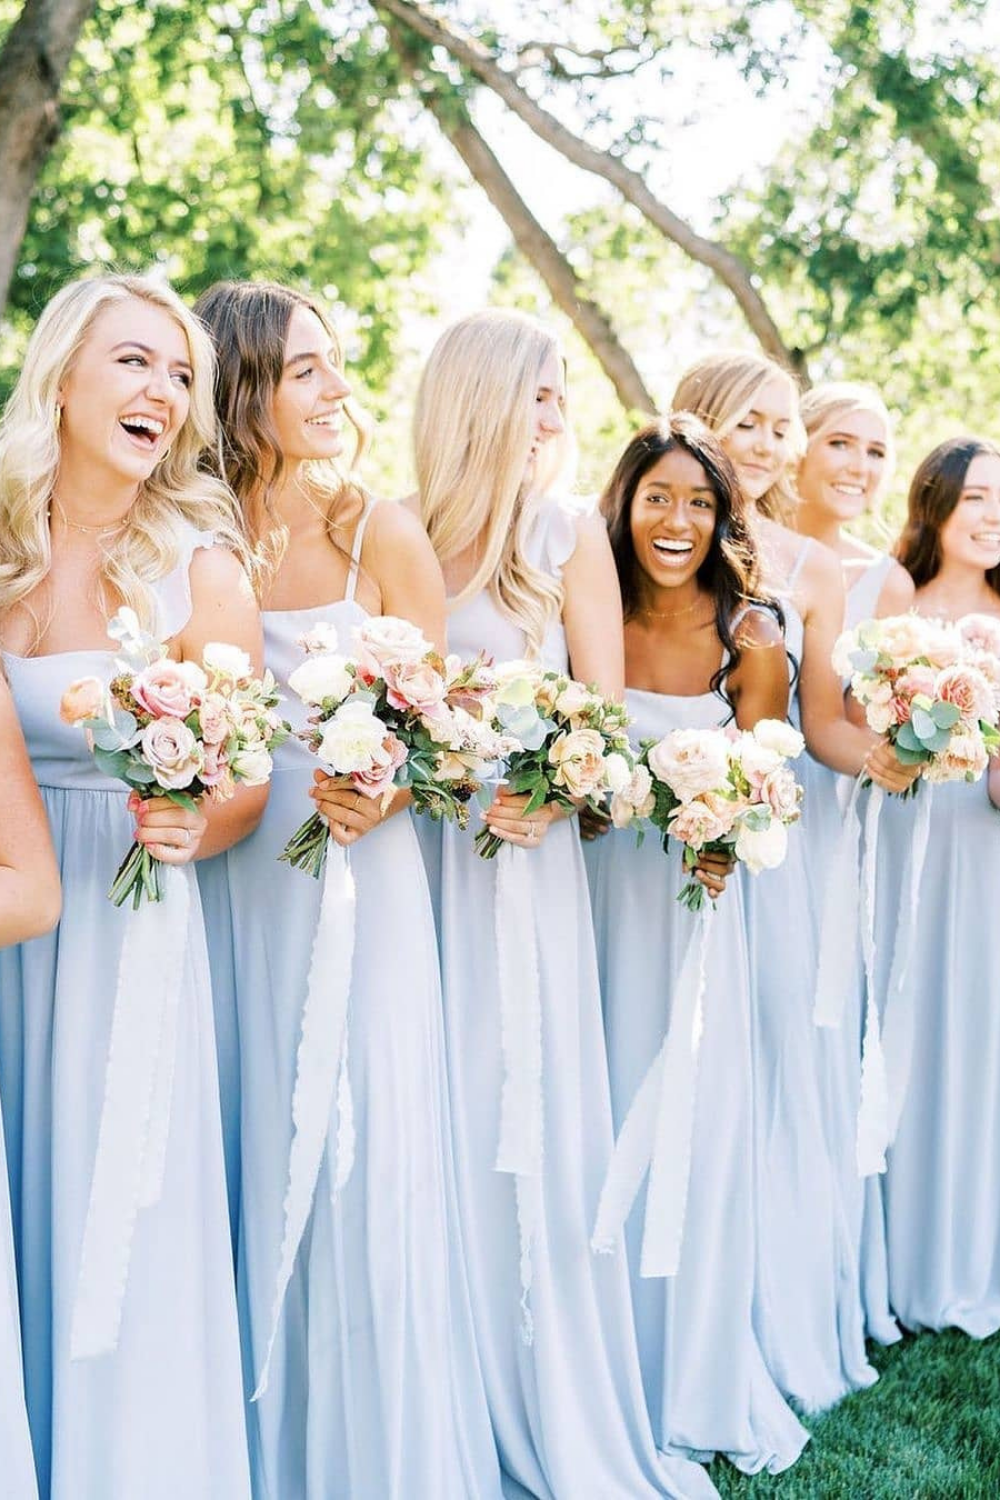 Blue Bridesmaid Dresses For The Perfect Spring Wedding In 2021 Light Blue Bridesmaid Dresses Light Blue Bridesmaid Light Blue Wedding Colors [ 1500 x 1000 Pixel ]